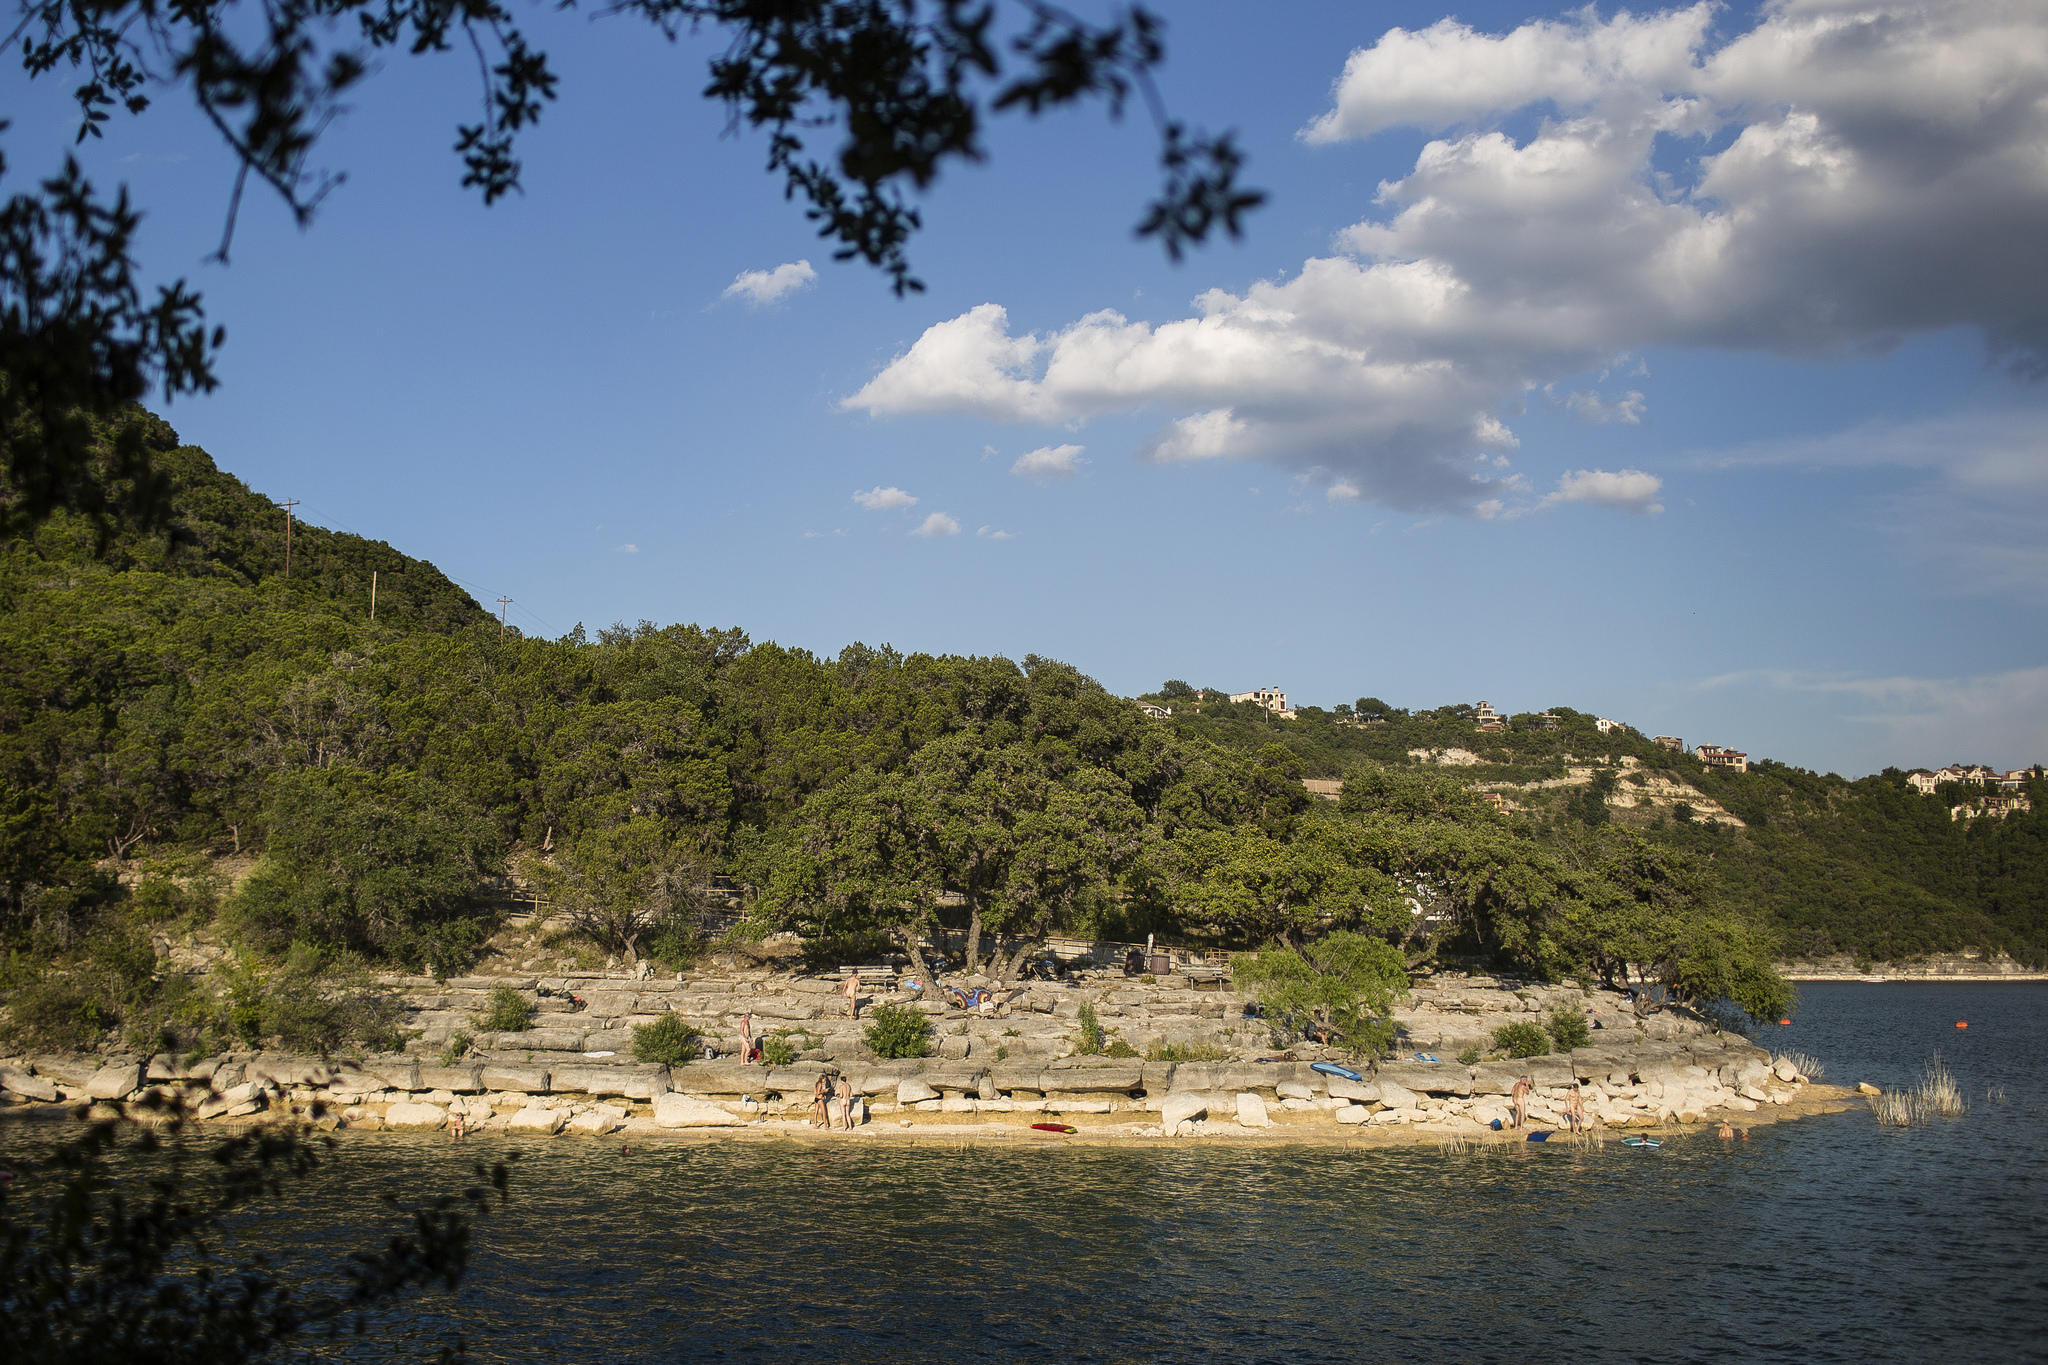 Folks Have Been Coming To Swim At Hippie Hollow On The S Of Lake Travis For Decades